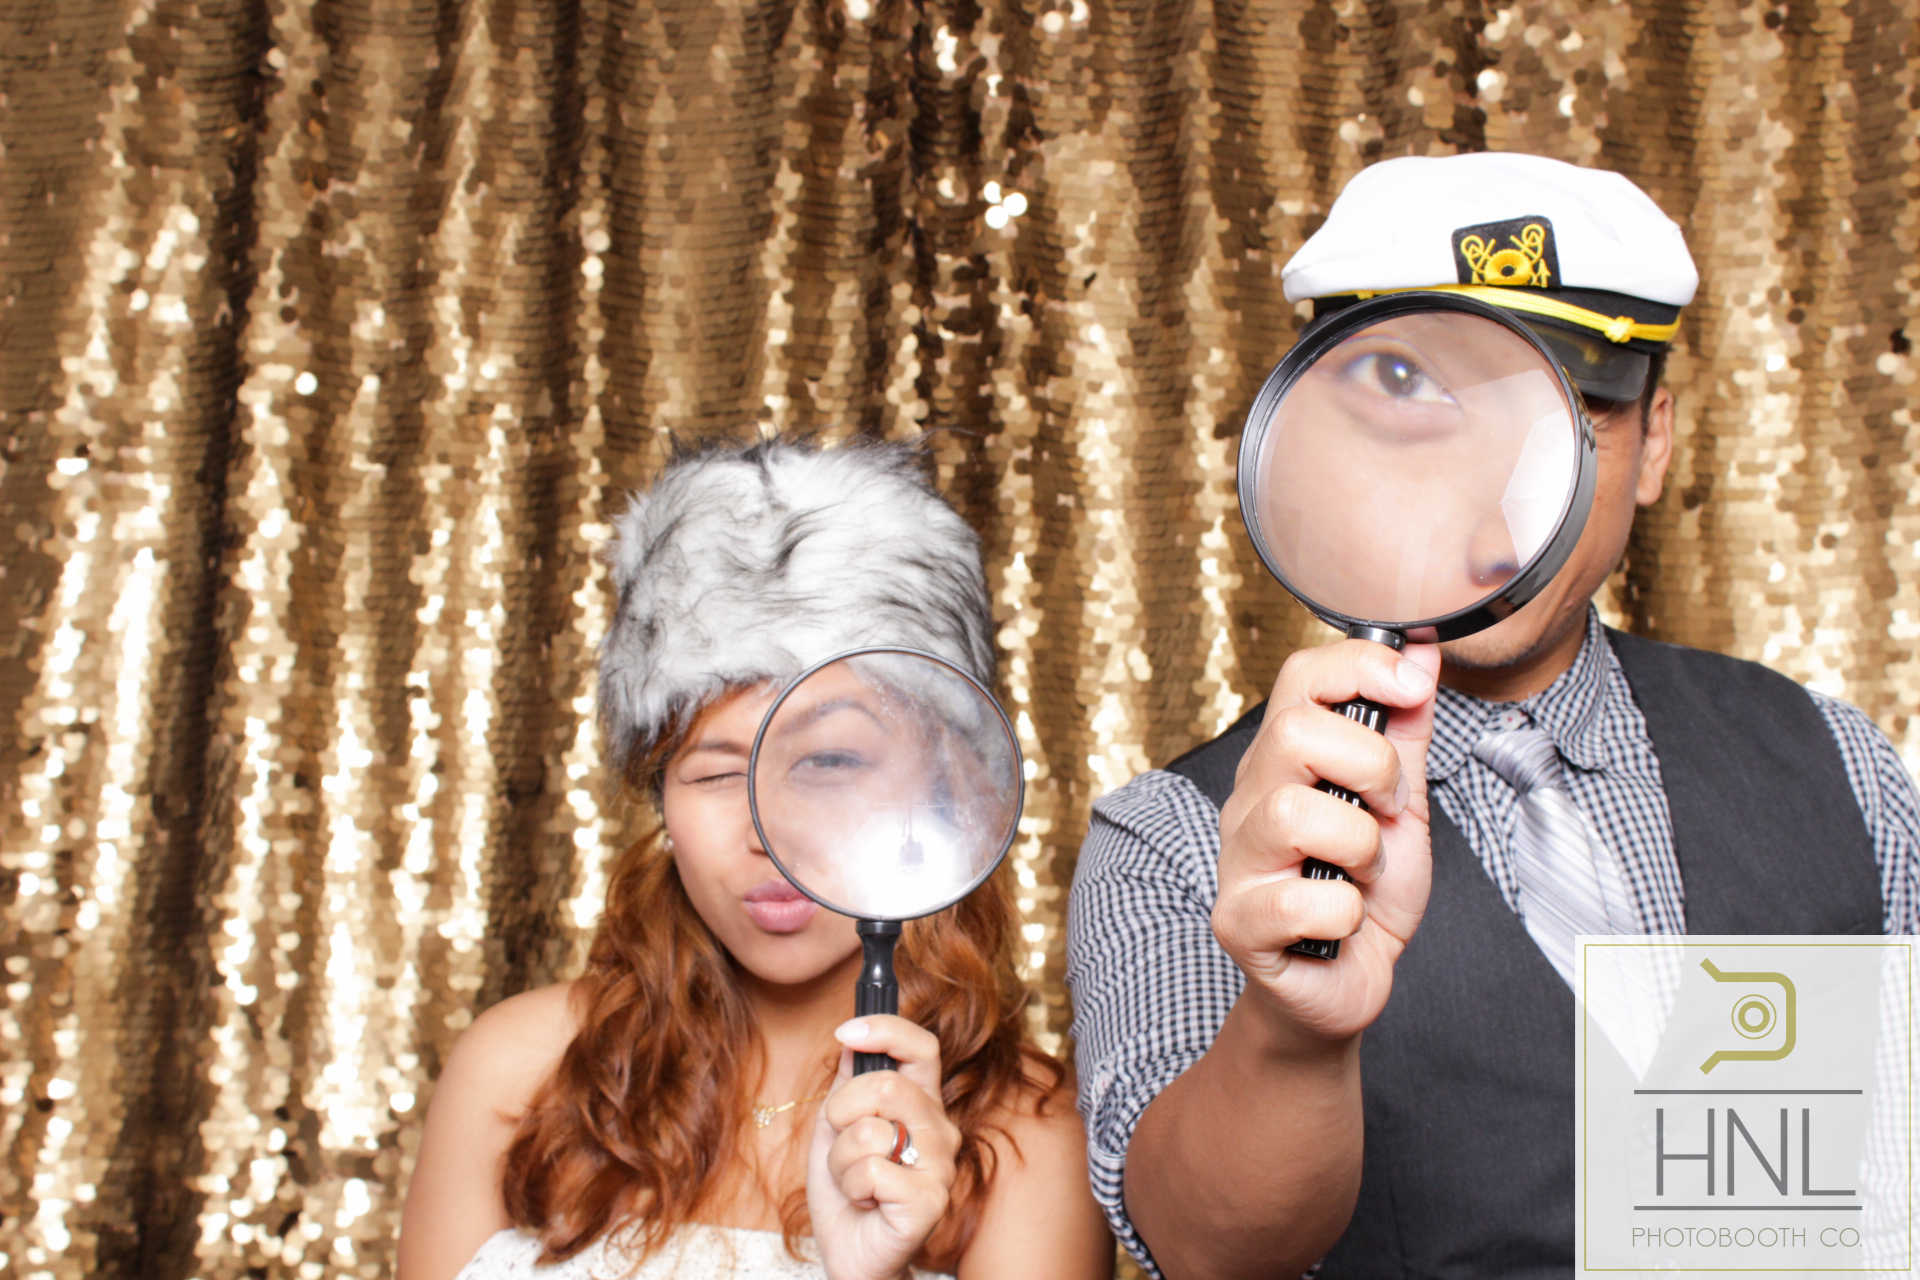 best Photo booth in oahu hawaii for weddings birthday graduation dj party rental aiea honolulu waipahu mililani company events occassions holidays kakaako